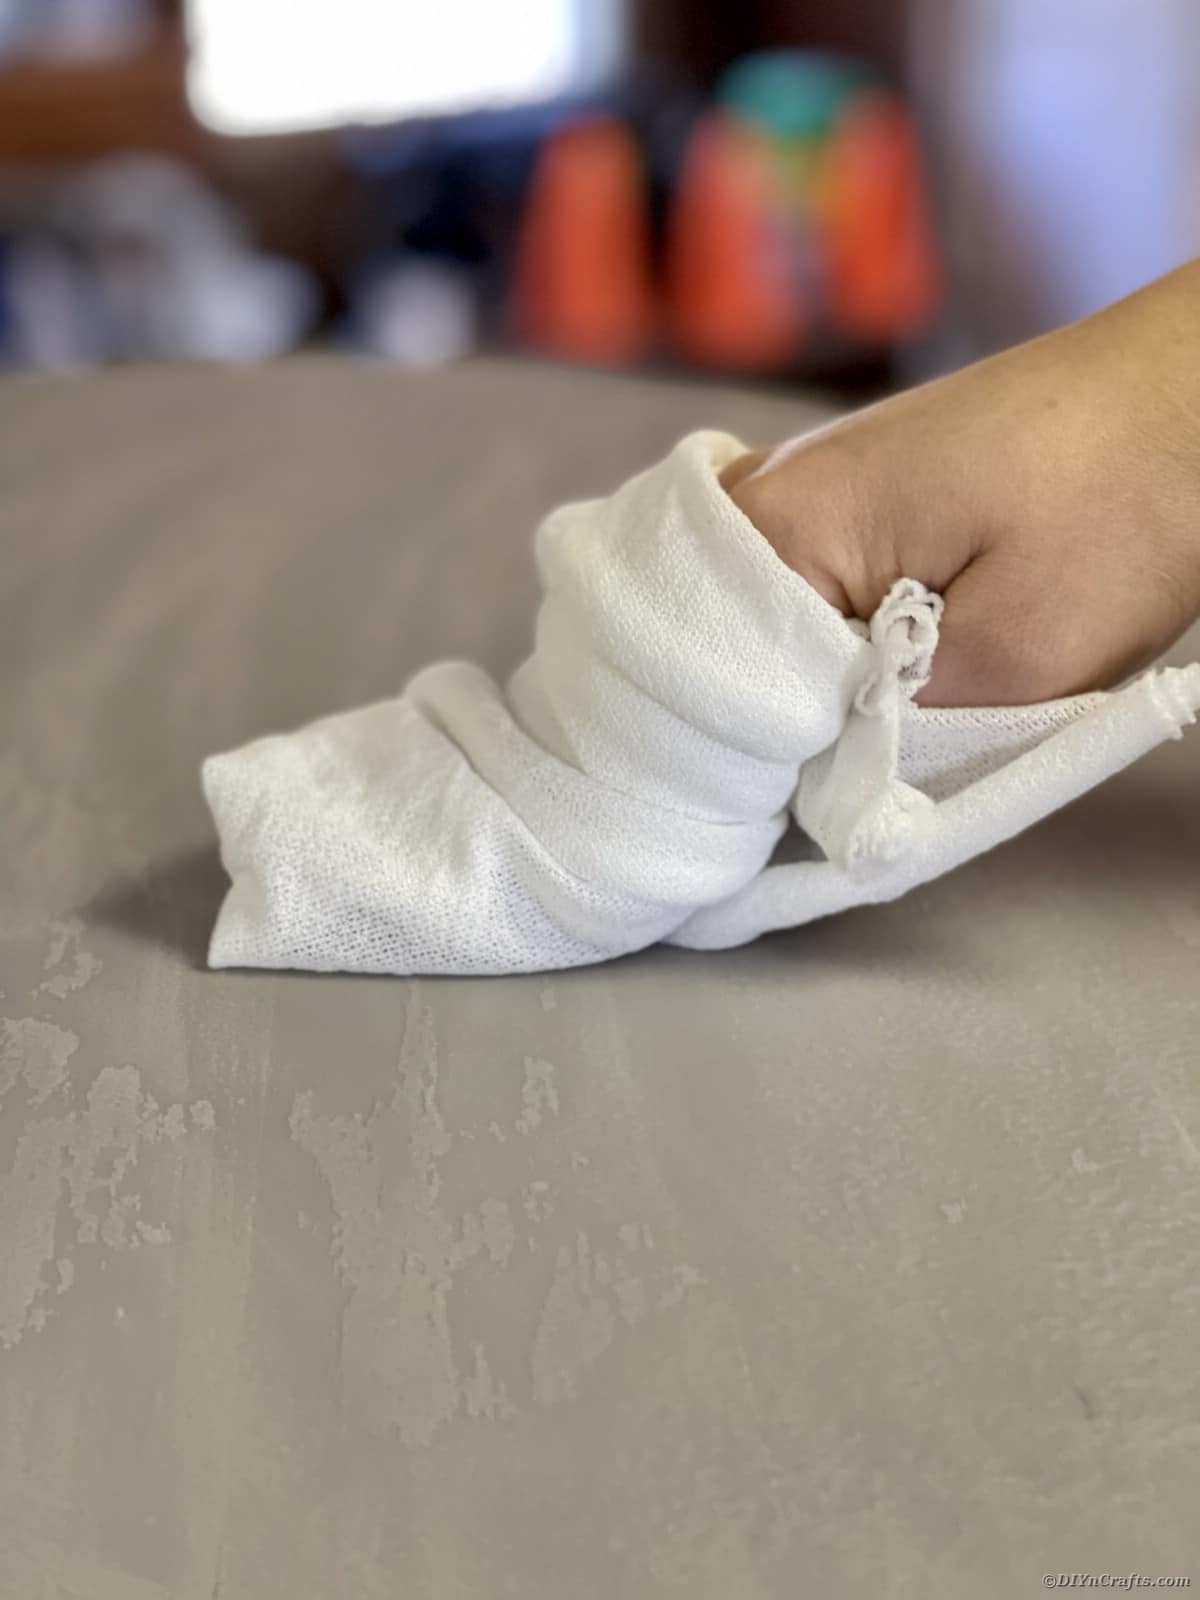 Hand with white cloth wiping top of table